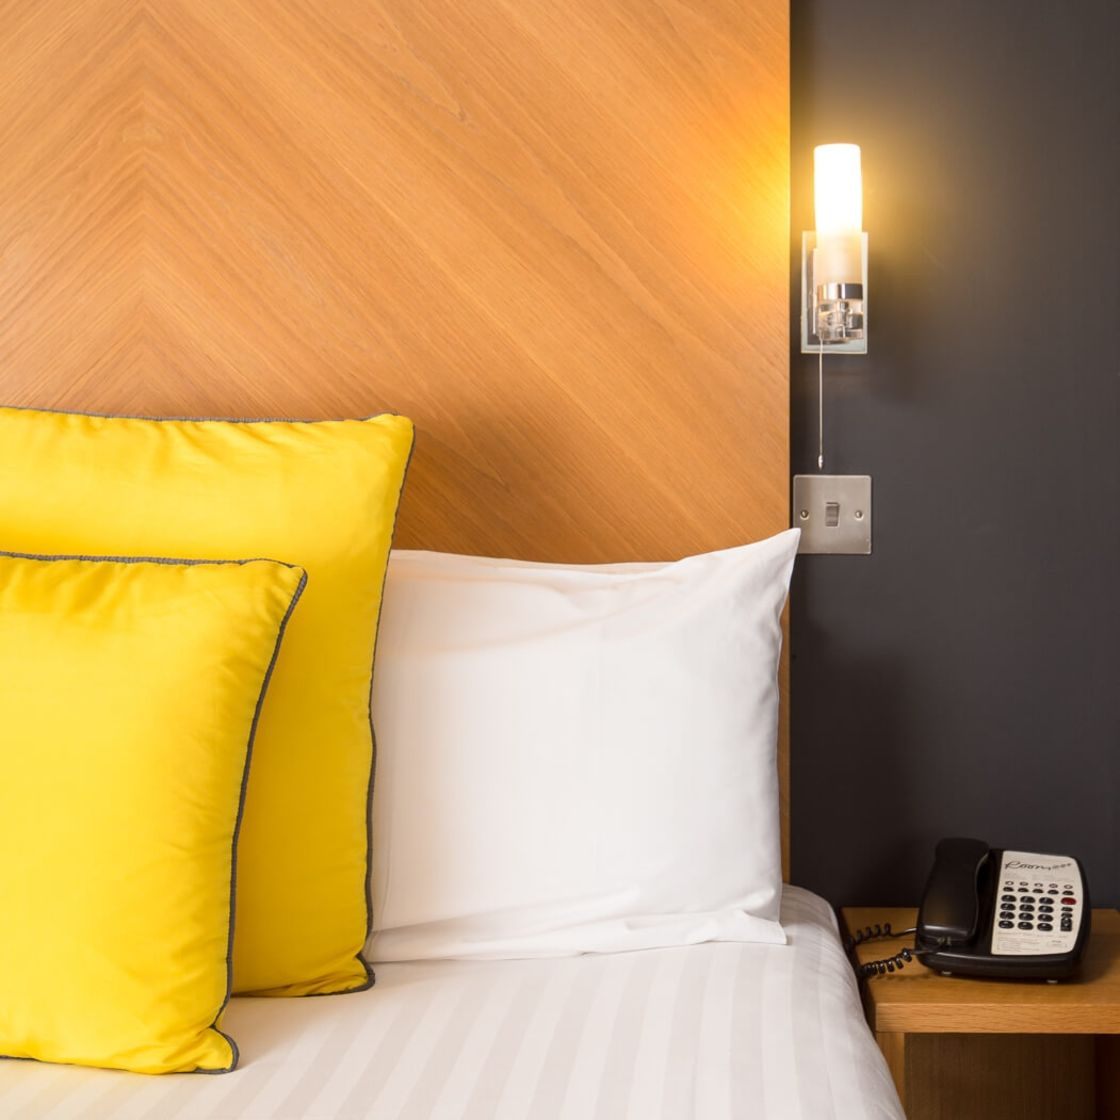 Smart Studio Student Apartment in Leeds. Bedside light and phone. IconInc @ Roomzzz Leeds City West